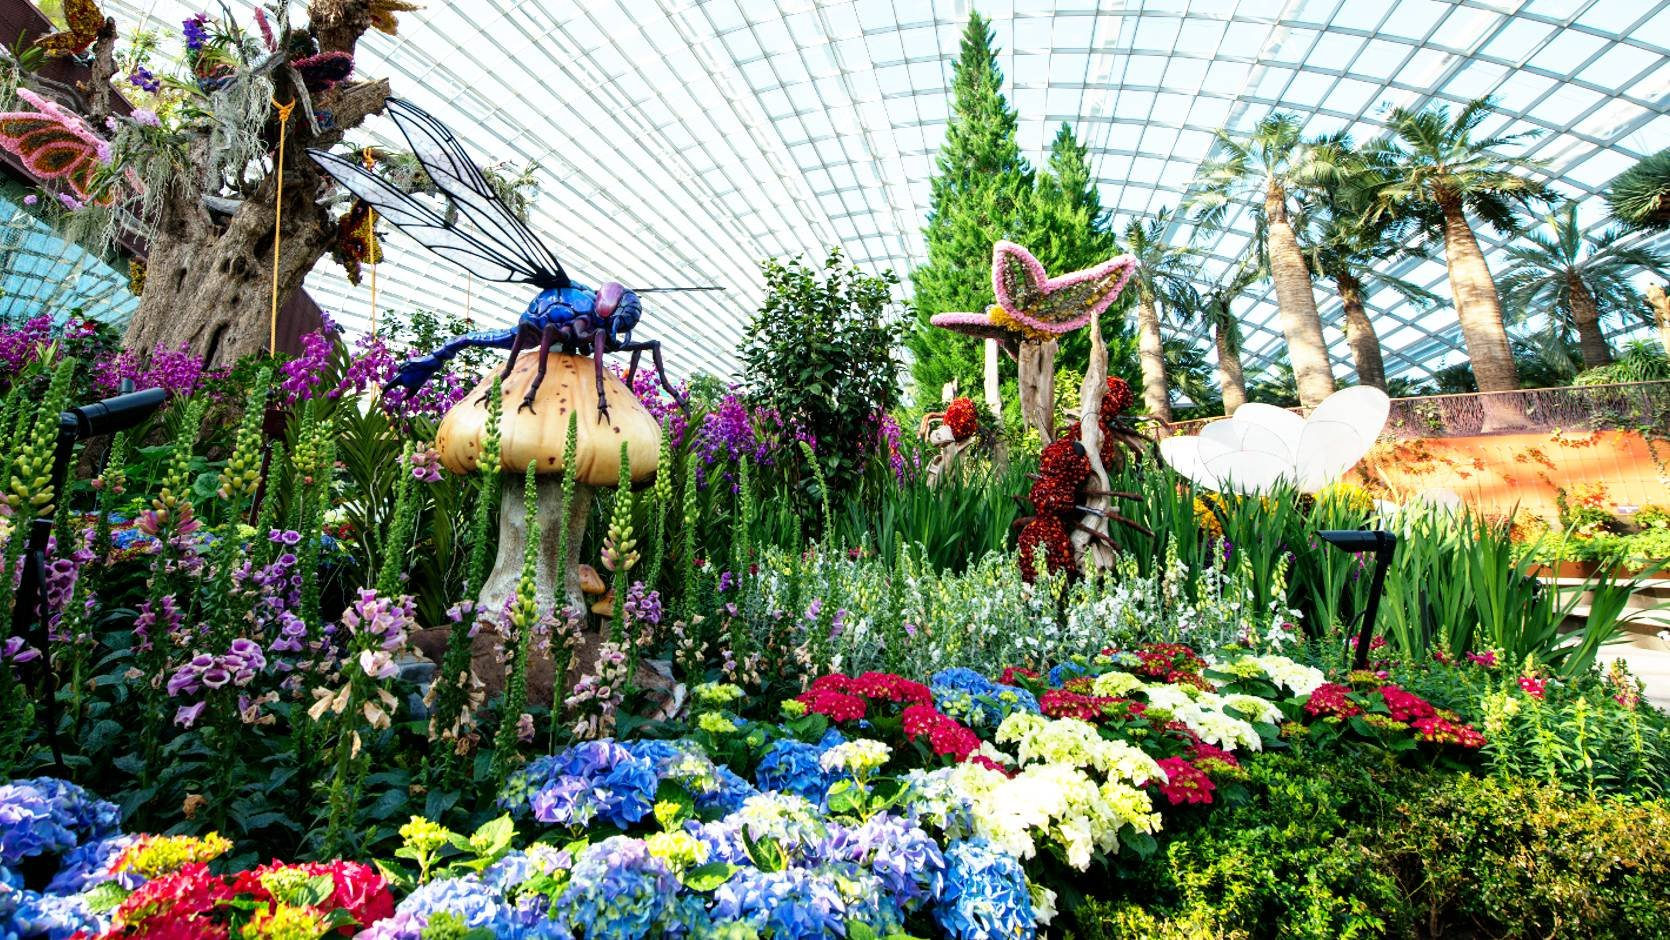 Image from Gardens by the Bay